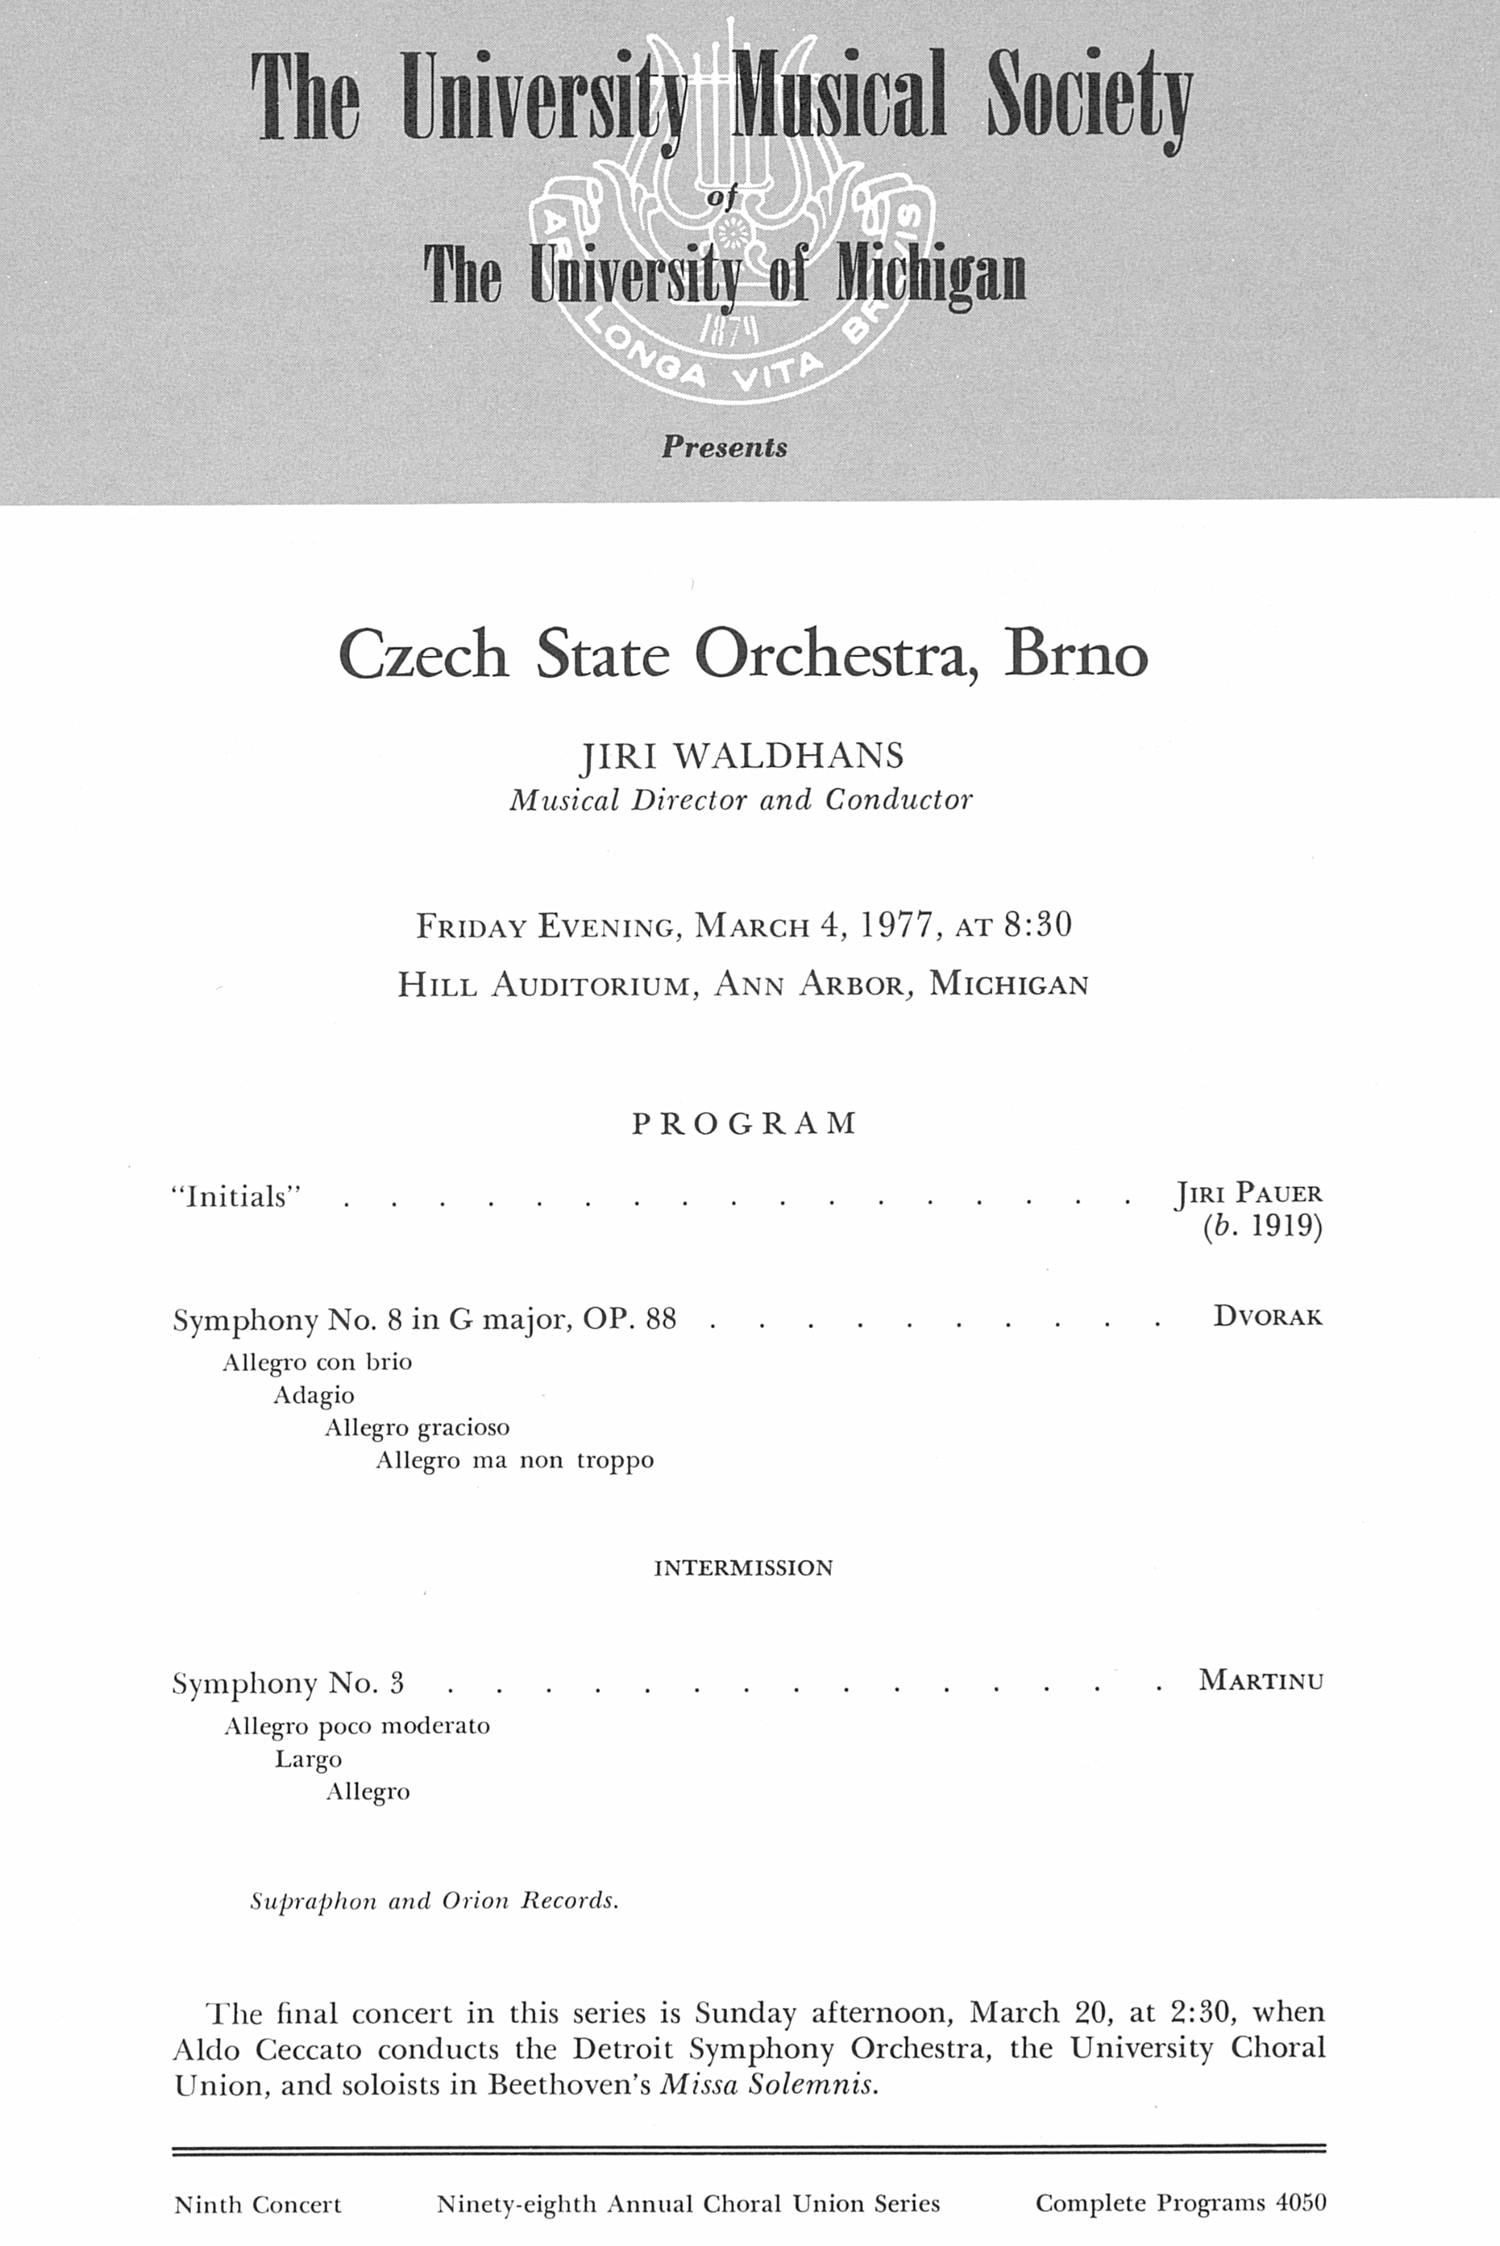 UMS Concert Program, March 4, 1977: Czech State Orchestra, Brno -- Jiri Waldhans image